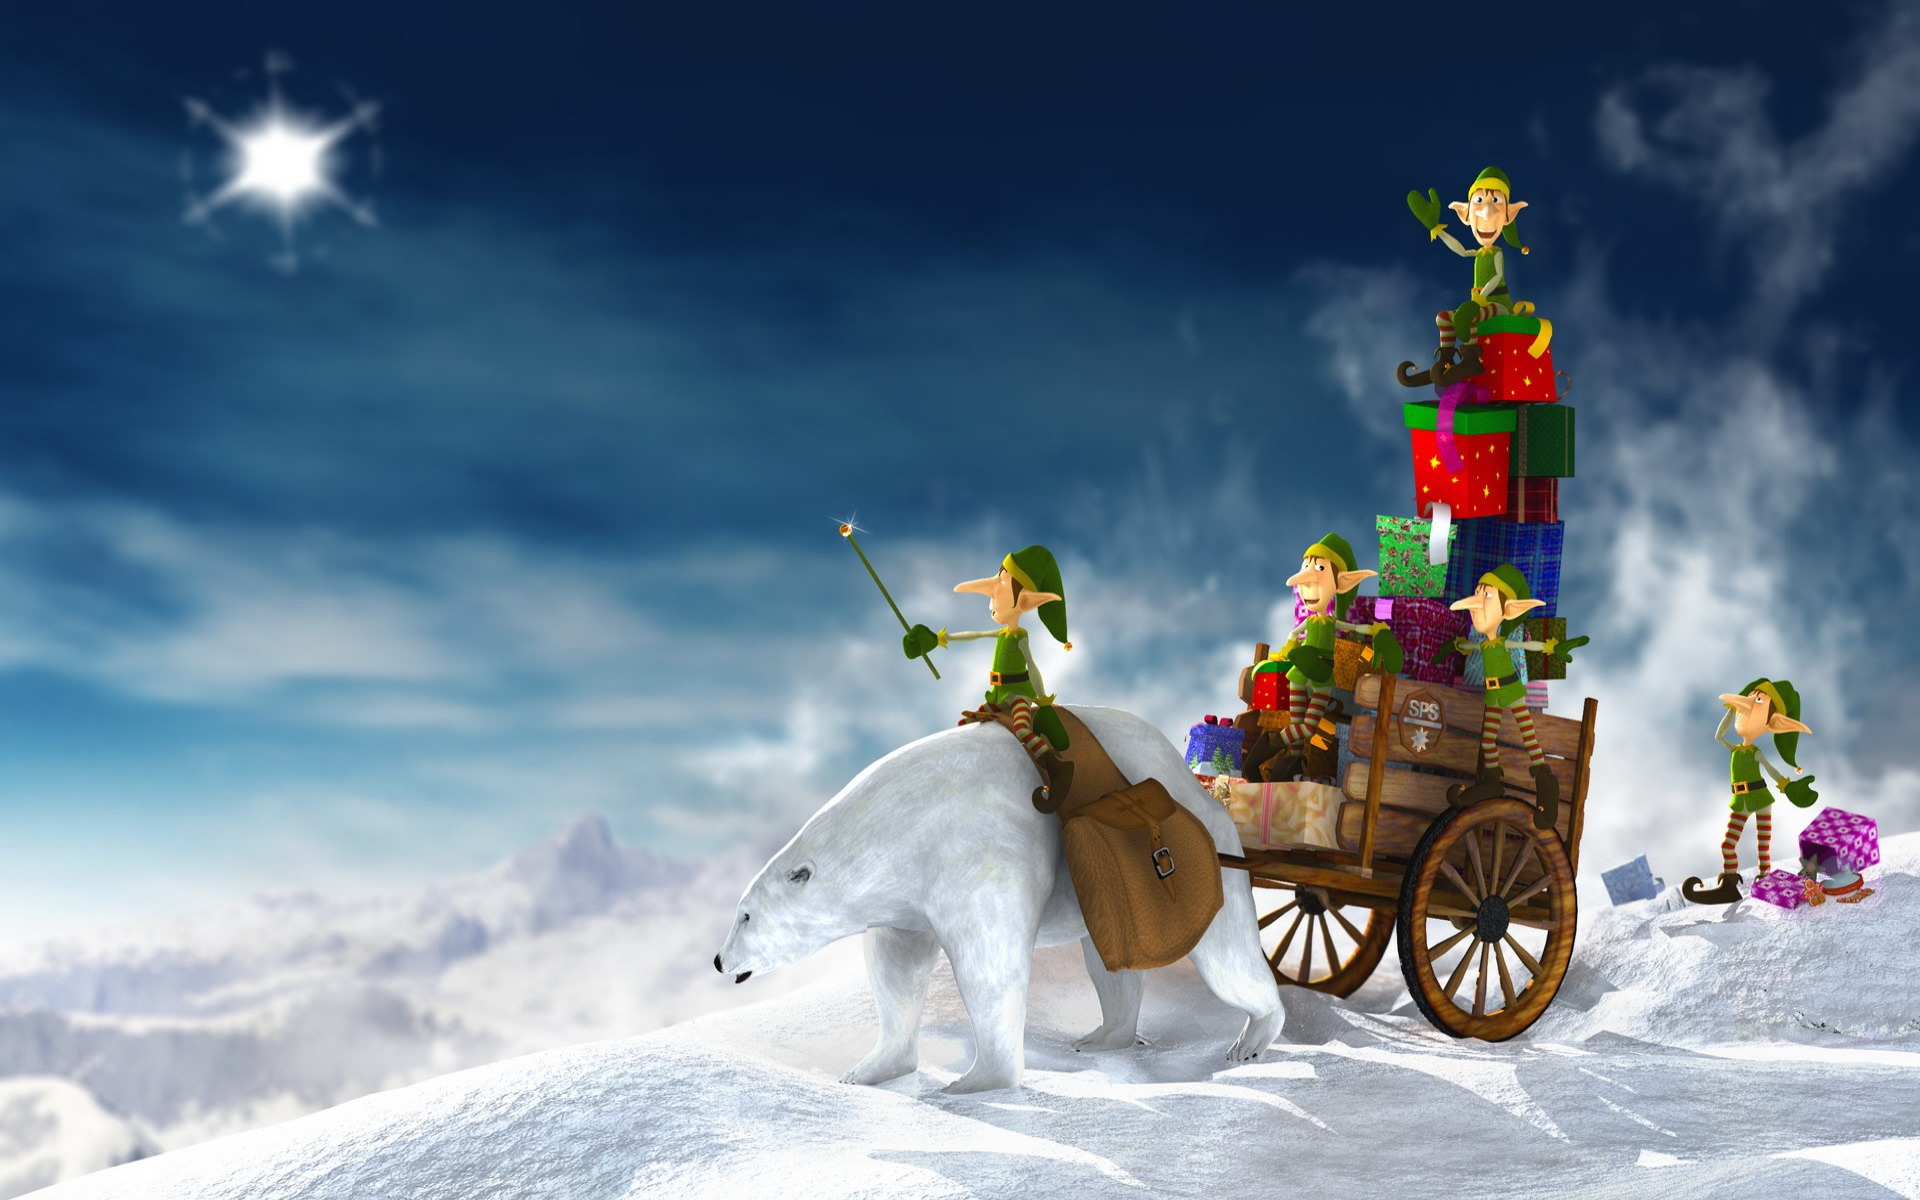 Winter And Christmas Wallpaper - WallpaperSafari